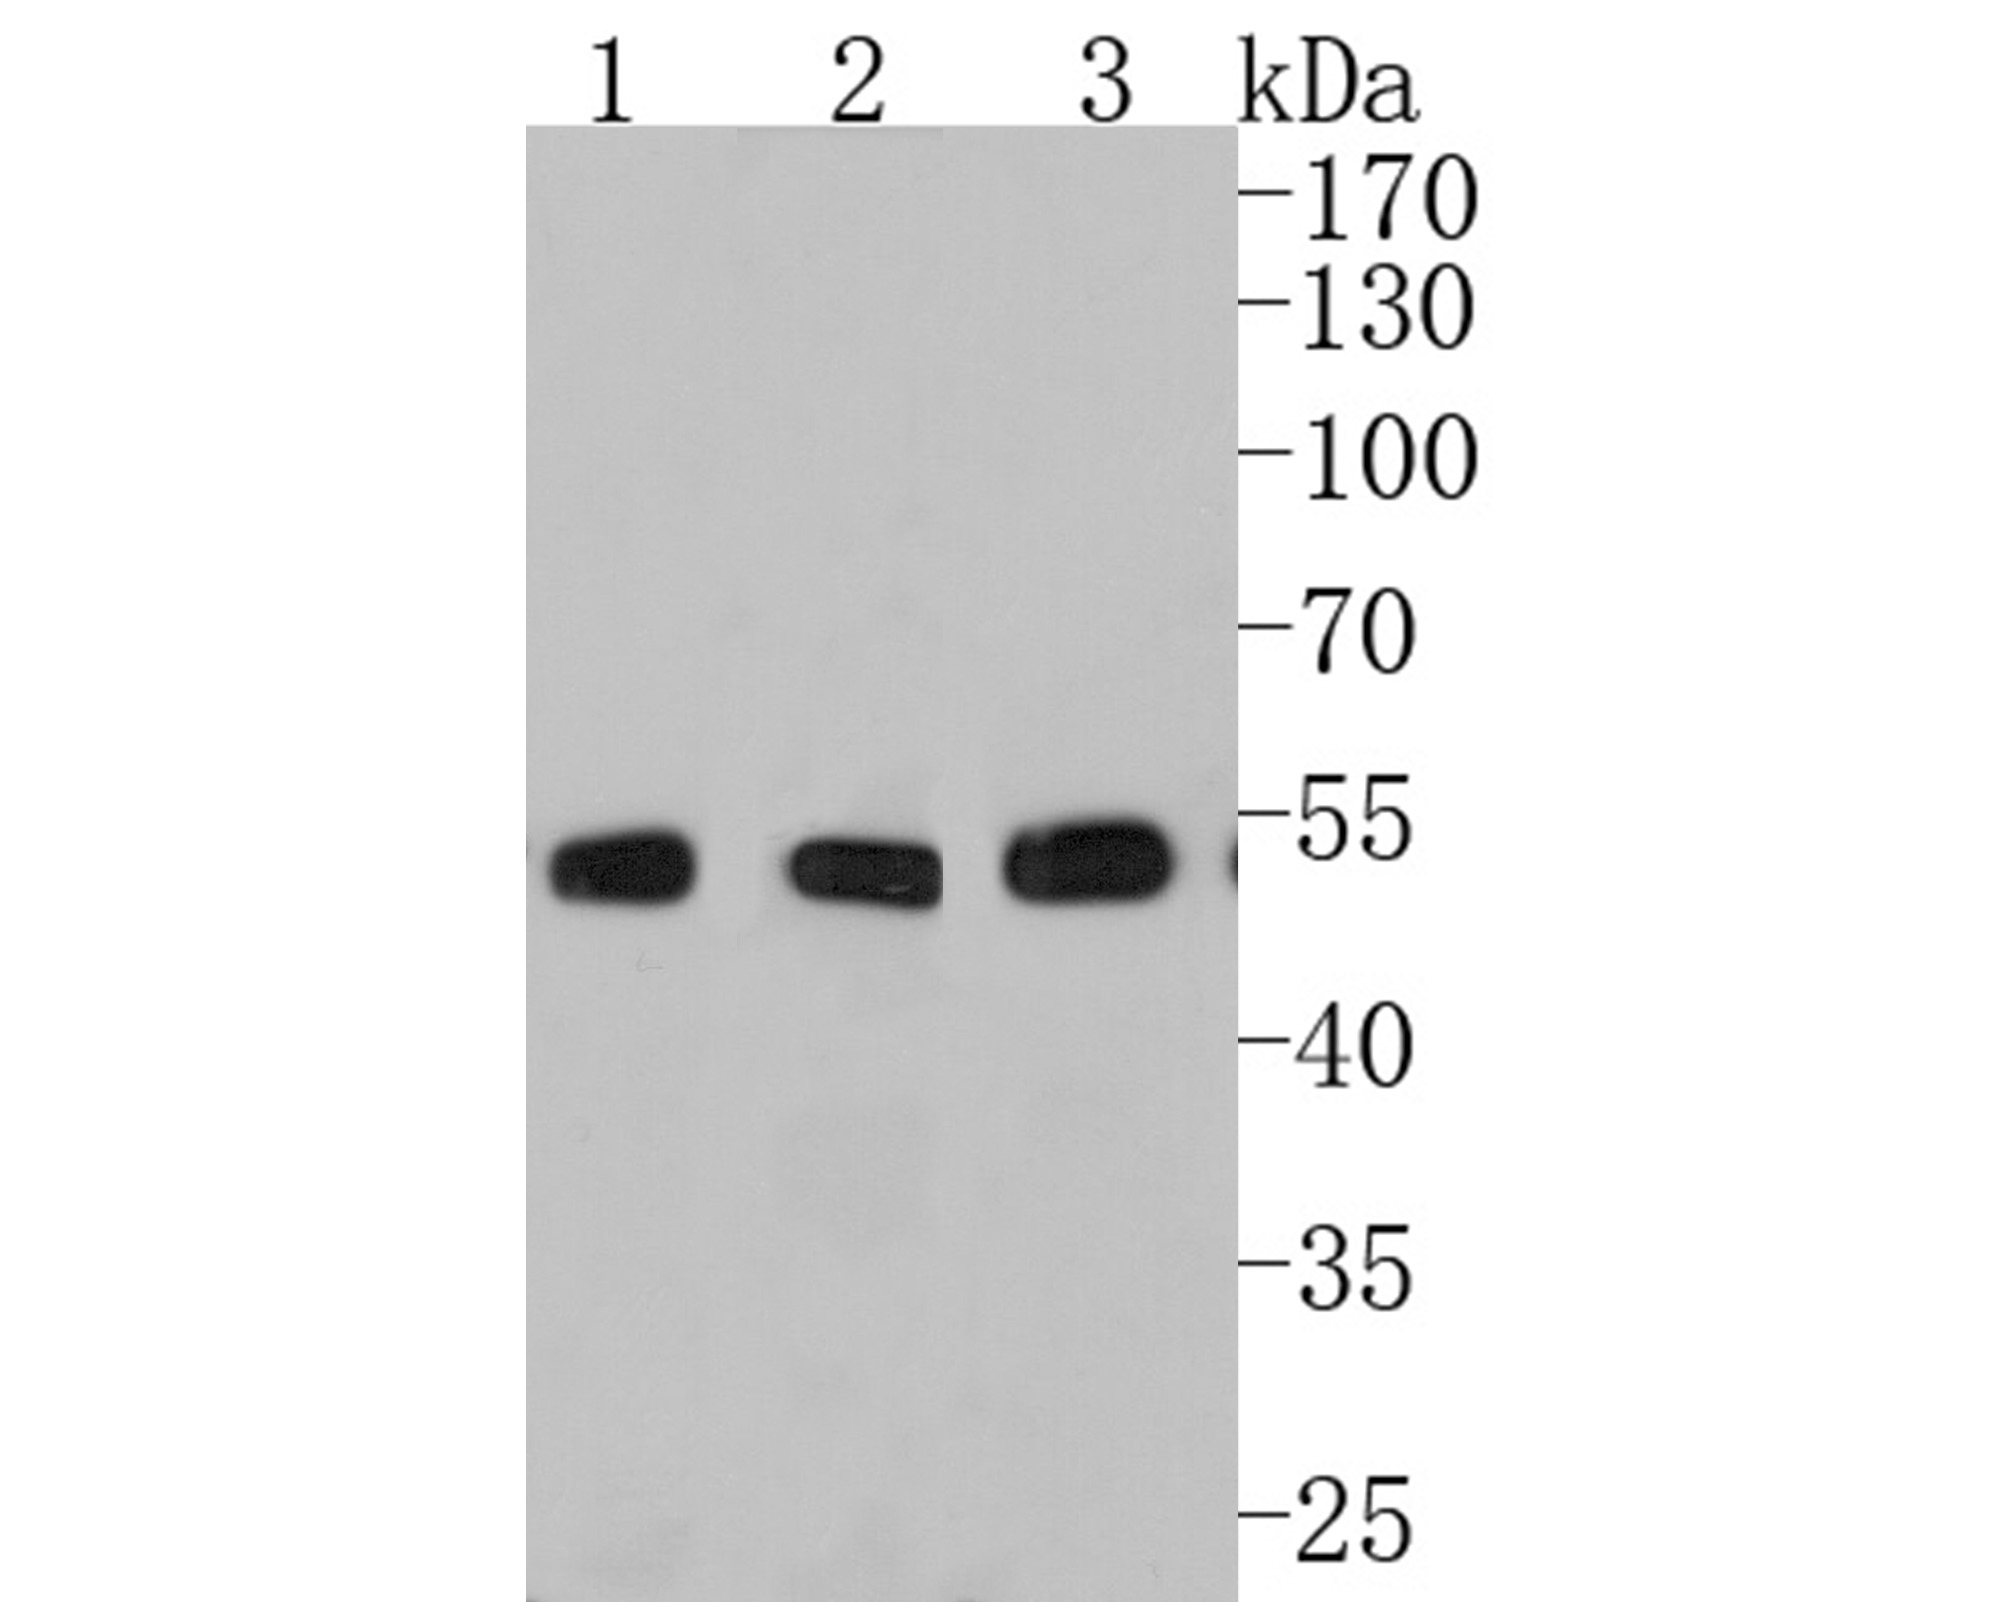 Western blot analysis of Phospho-p53(S392) on different lysates. Proteins were transferred to a PVDF membrane and blocked with 5% BSA in PBS for 1 hour at room temperature. The primary antibody (ET1606-24, 1/500) was used in 5% BSA at room temperature for 2 hours. Goat Anti-Rabbit IgG - HRP Secondary Antibody (HA1001) at 1:5,000 dilution was used for 1 hour at room temperature.<br /> Positive control: <br /> Lane 1: 293 cell lysate<br /> Lane 2: F9 cell lysate<br /> Lane 3: A431 cell lysate